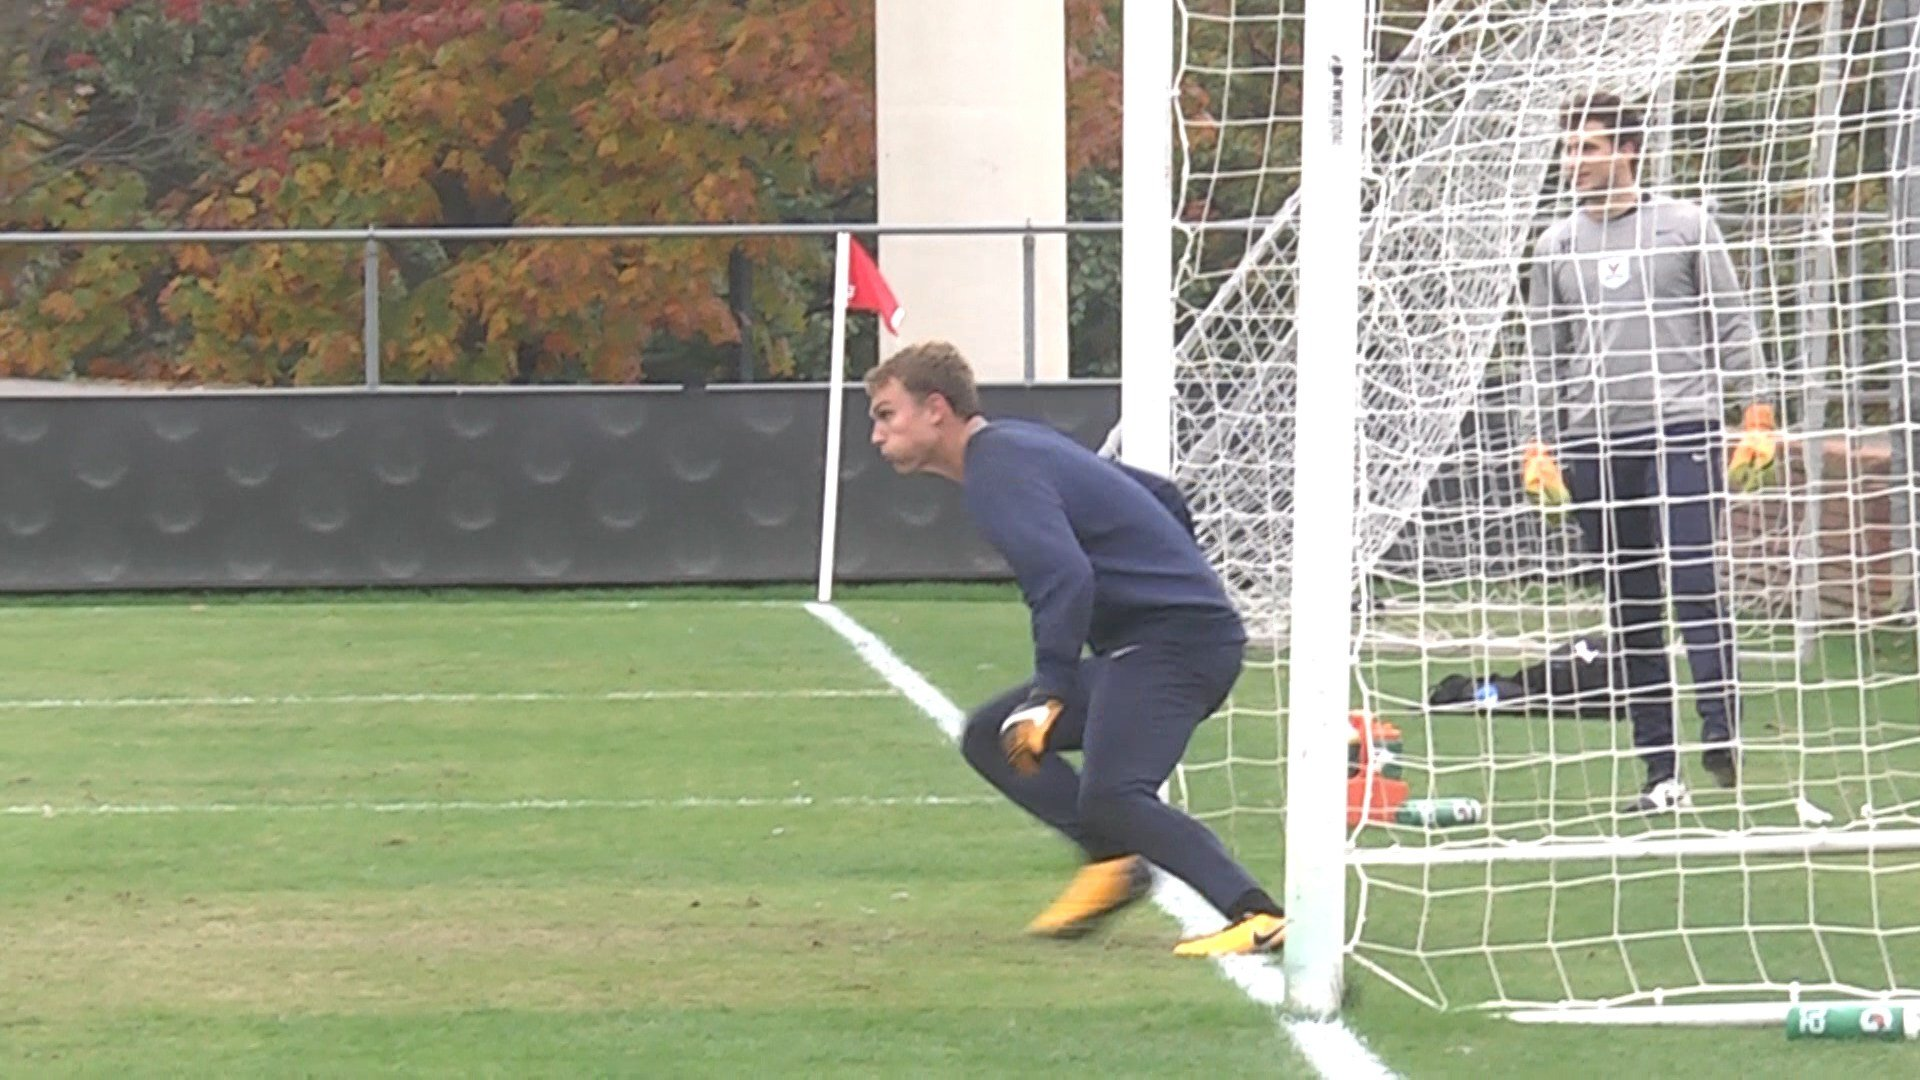 Senior goalkeeper Jeff Caldwell was named Second Team All-Conference